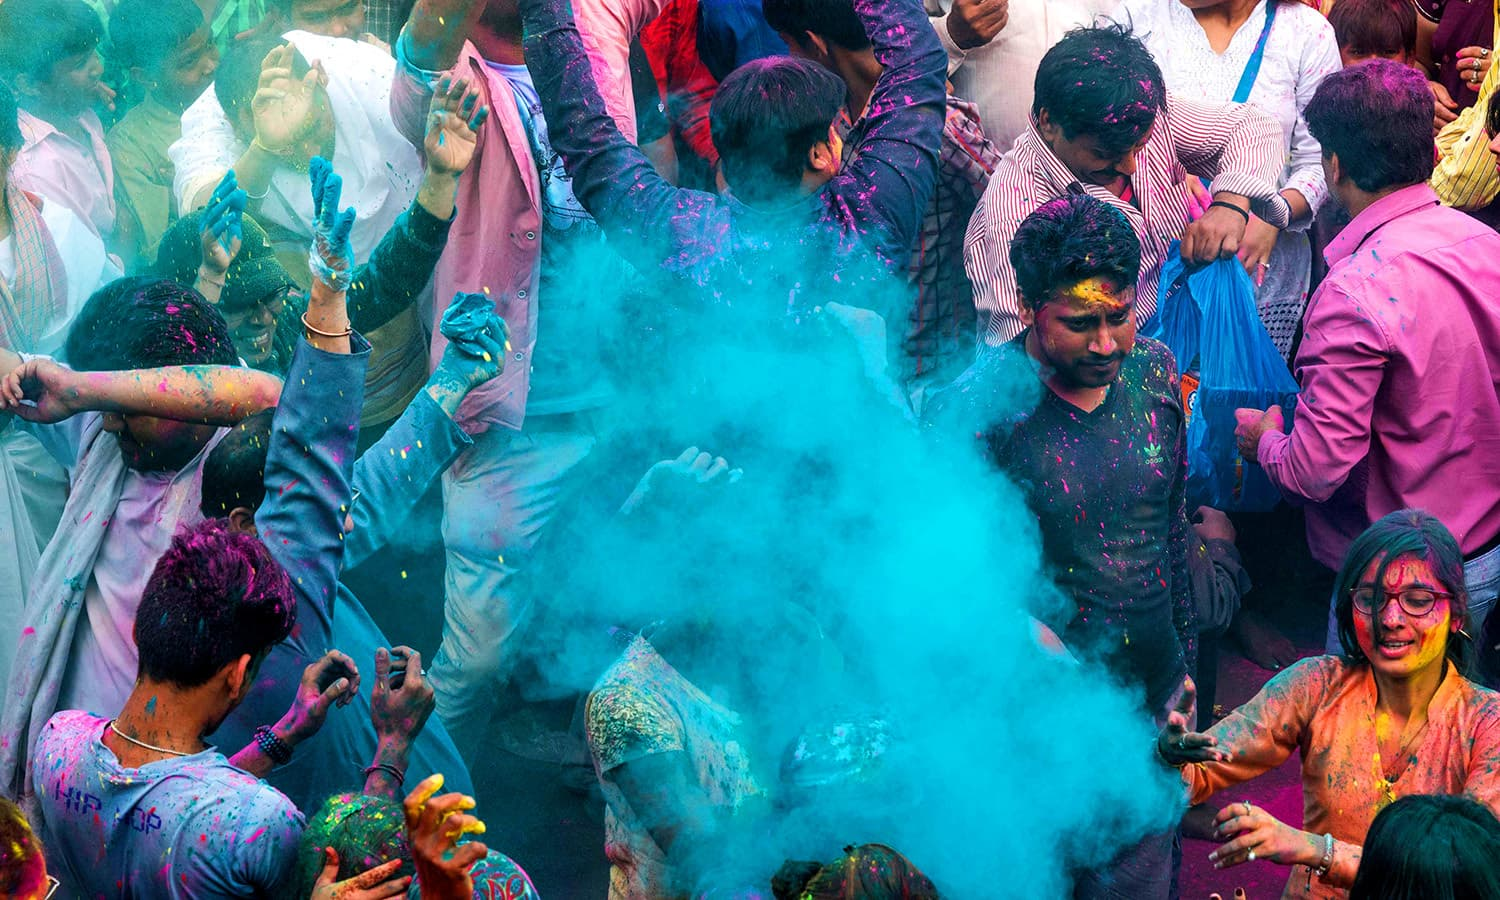 Indian villagers are covered in coloured powders during the Holi festival at the Radha Rani temple in Barsana. ─ AFP